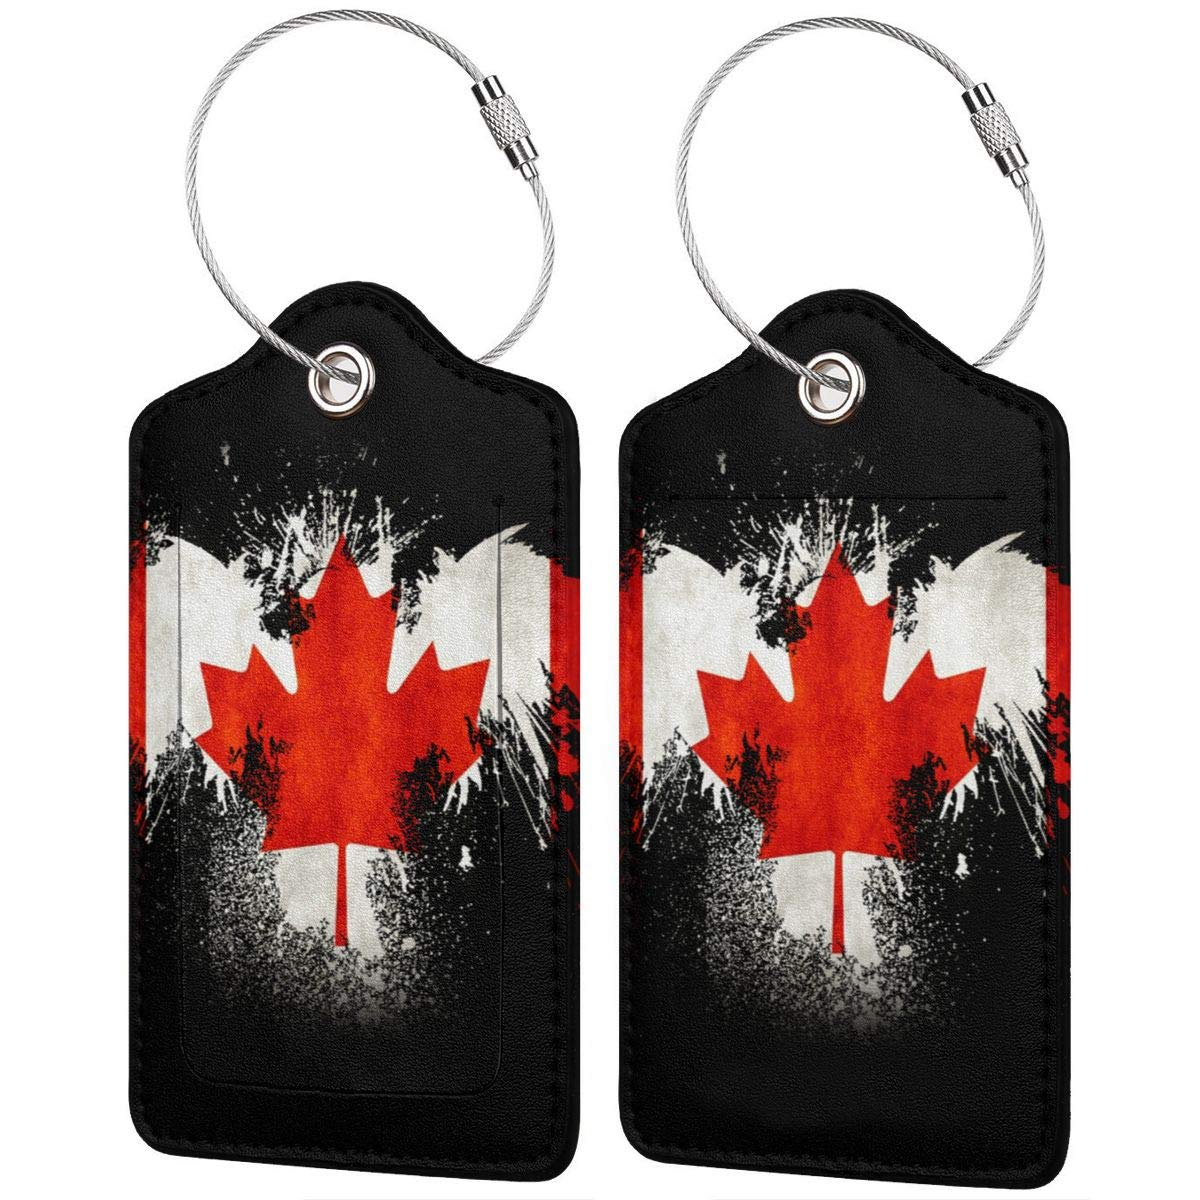 GoldK Canadian Eagle Leather Luggage Tags Baggage Bag Instrument Tag Travel Labels Accessories with Privacy Cover